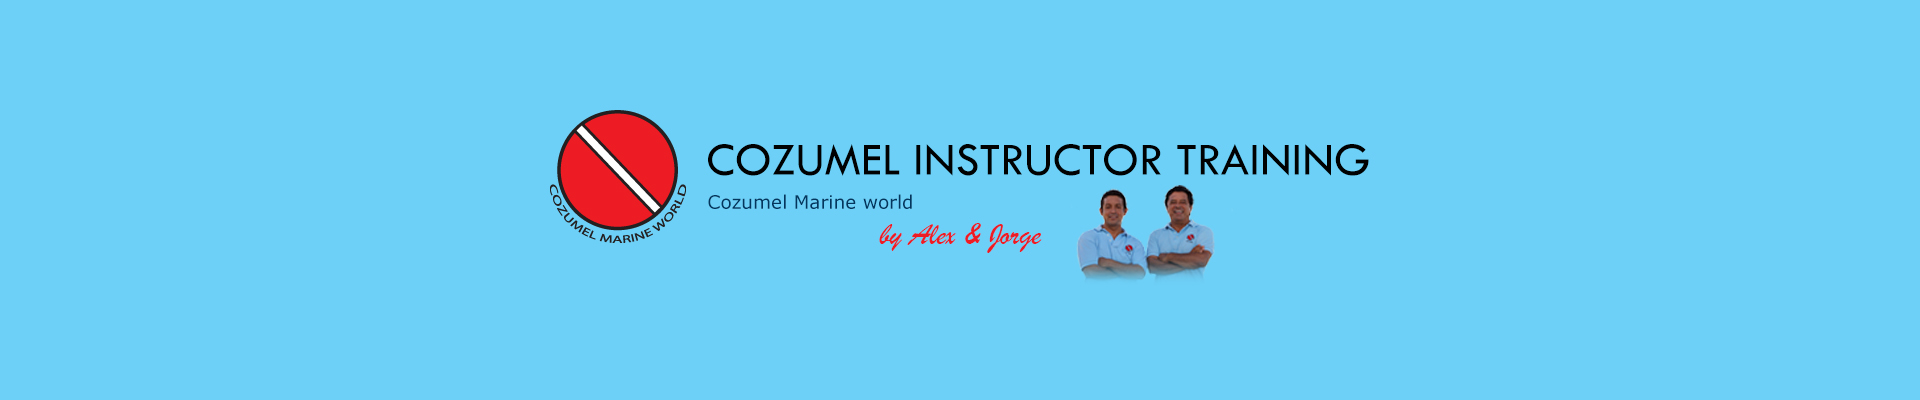 Cozumel Instructor Training